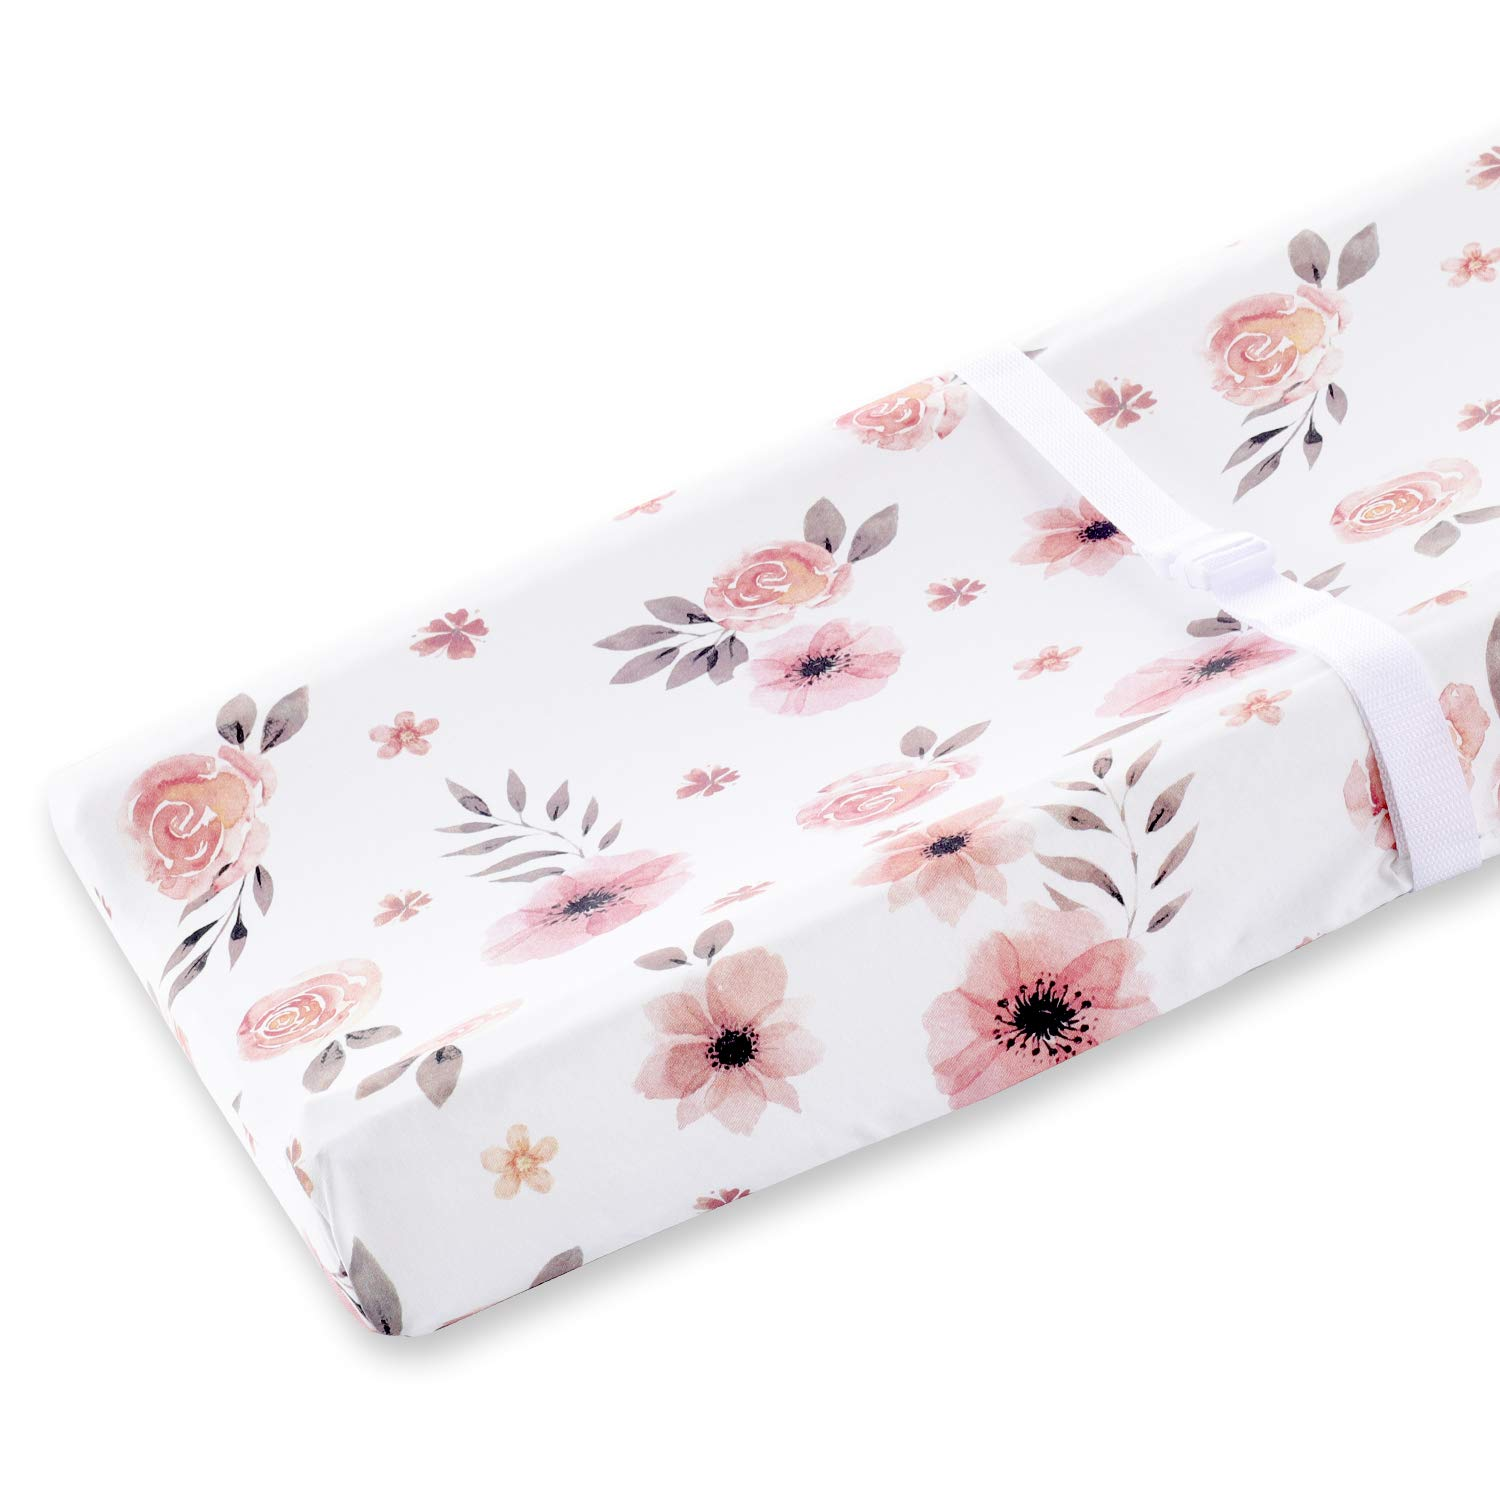 Countryside Floral Pink Grey and White Super Soft Changing Pad Cover